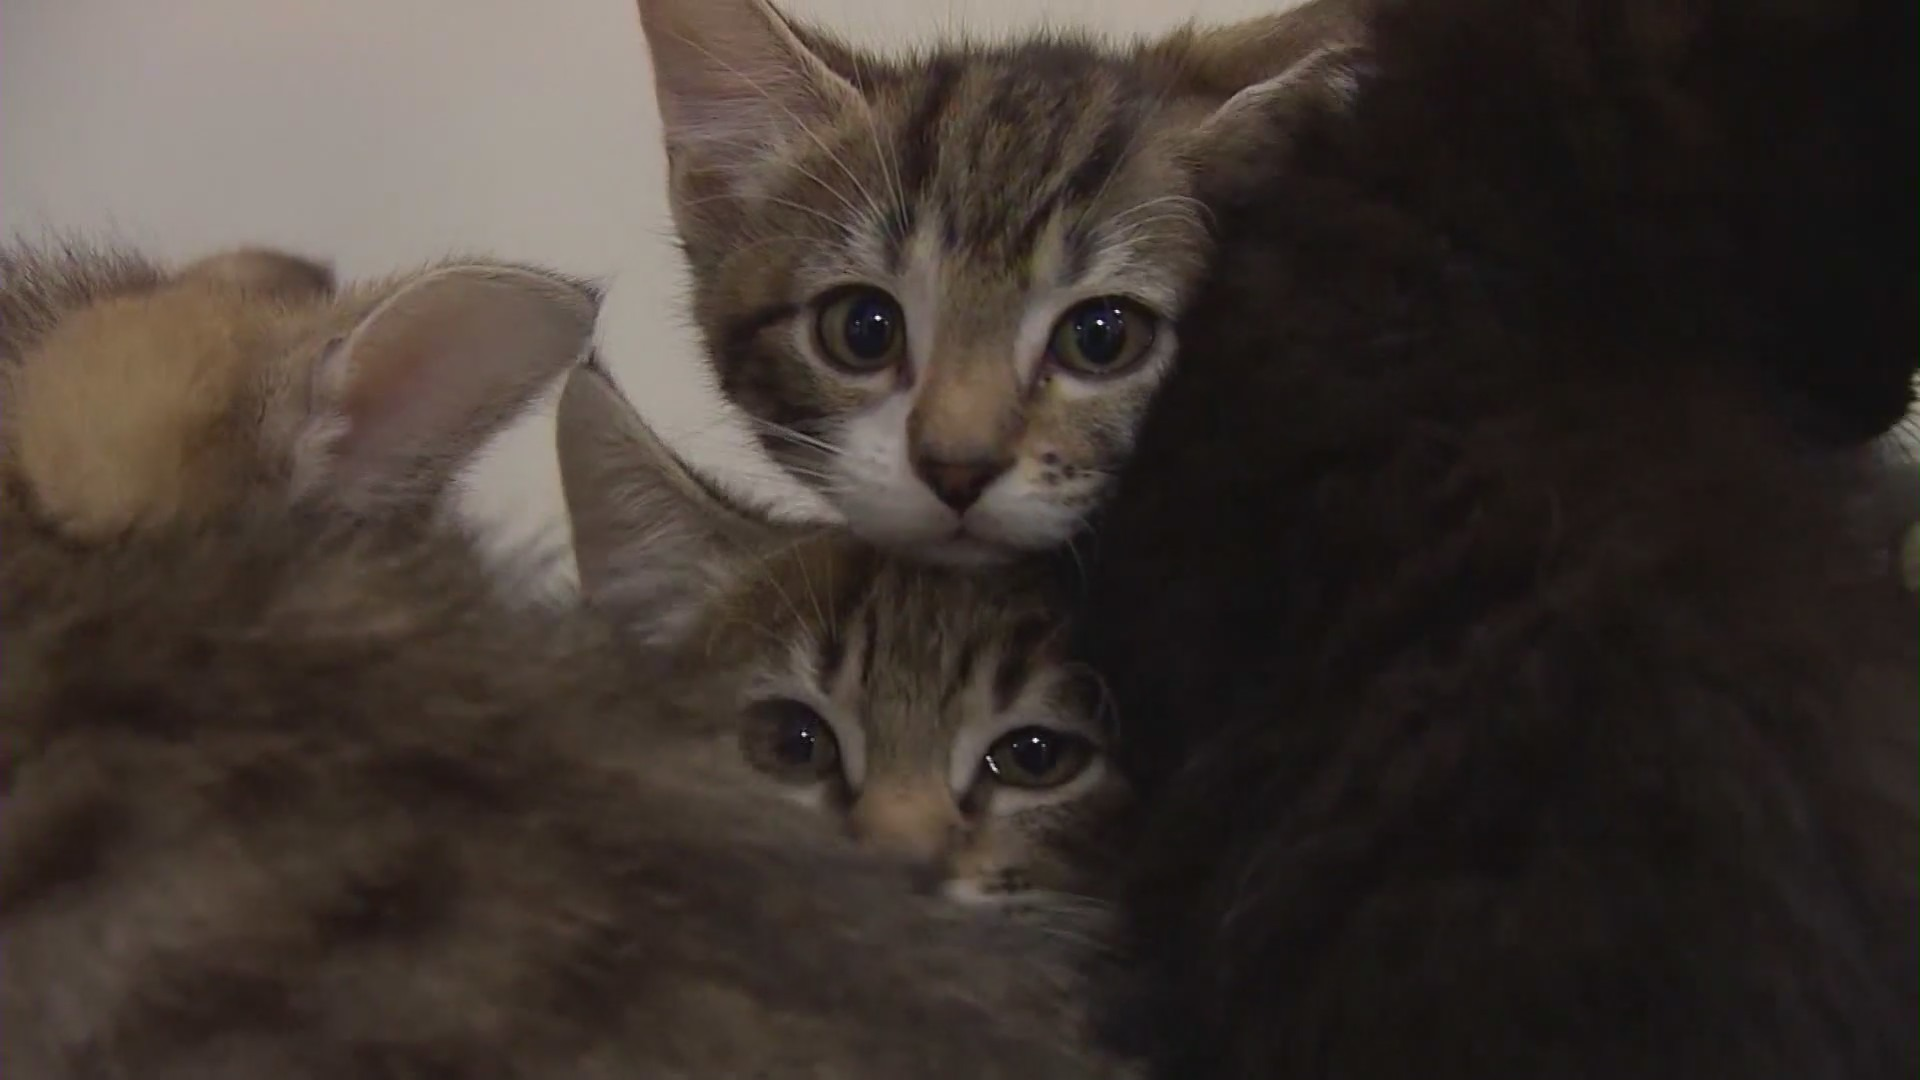 The Johnson Foundation in Tujunga is adopting out cats for Fathers Day on June 20, 2021.